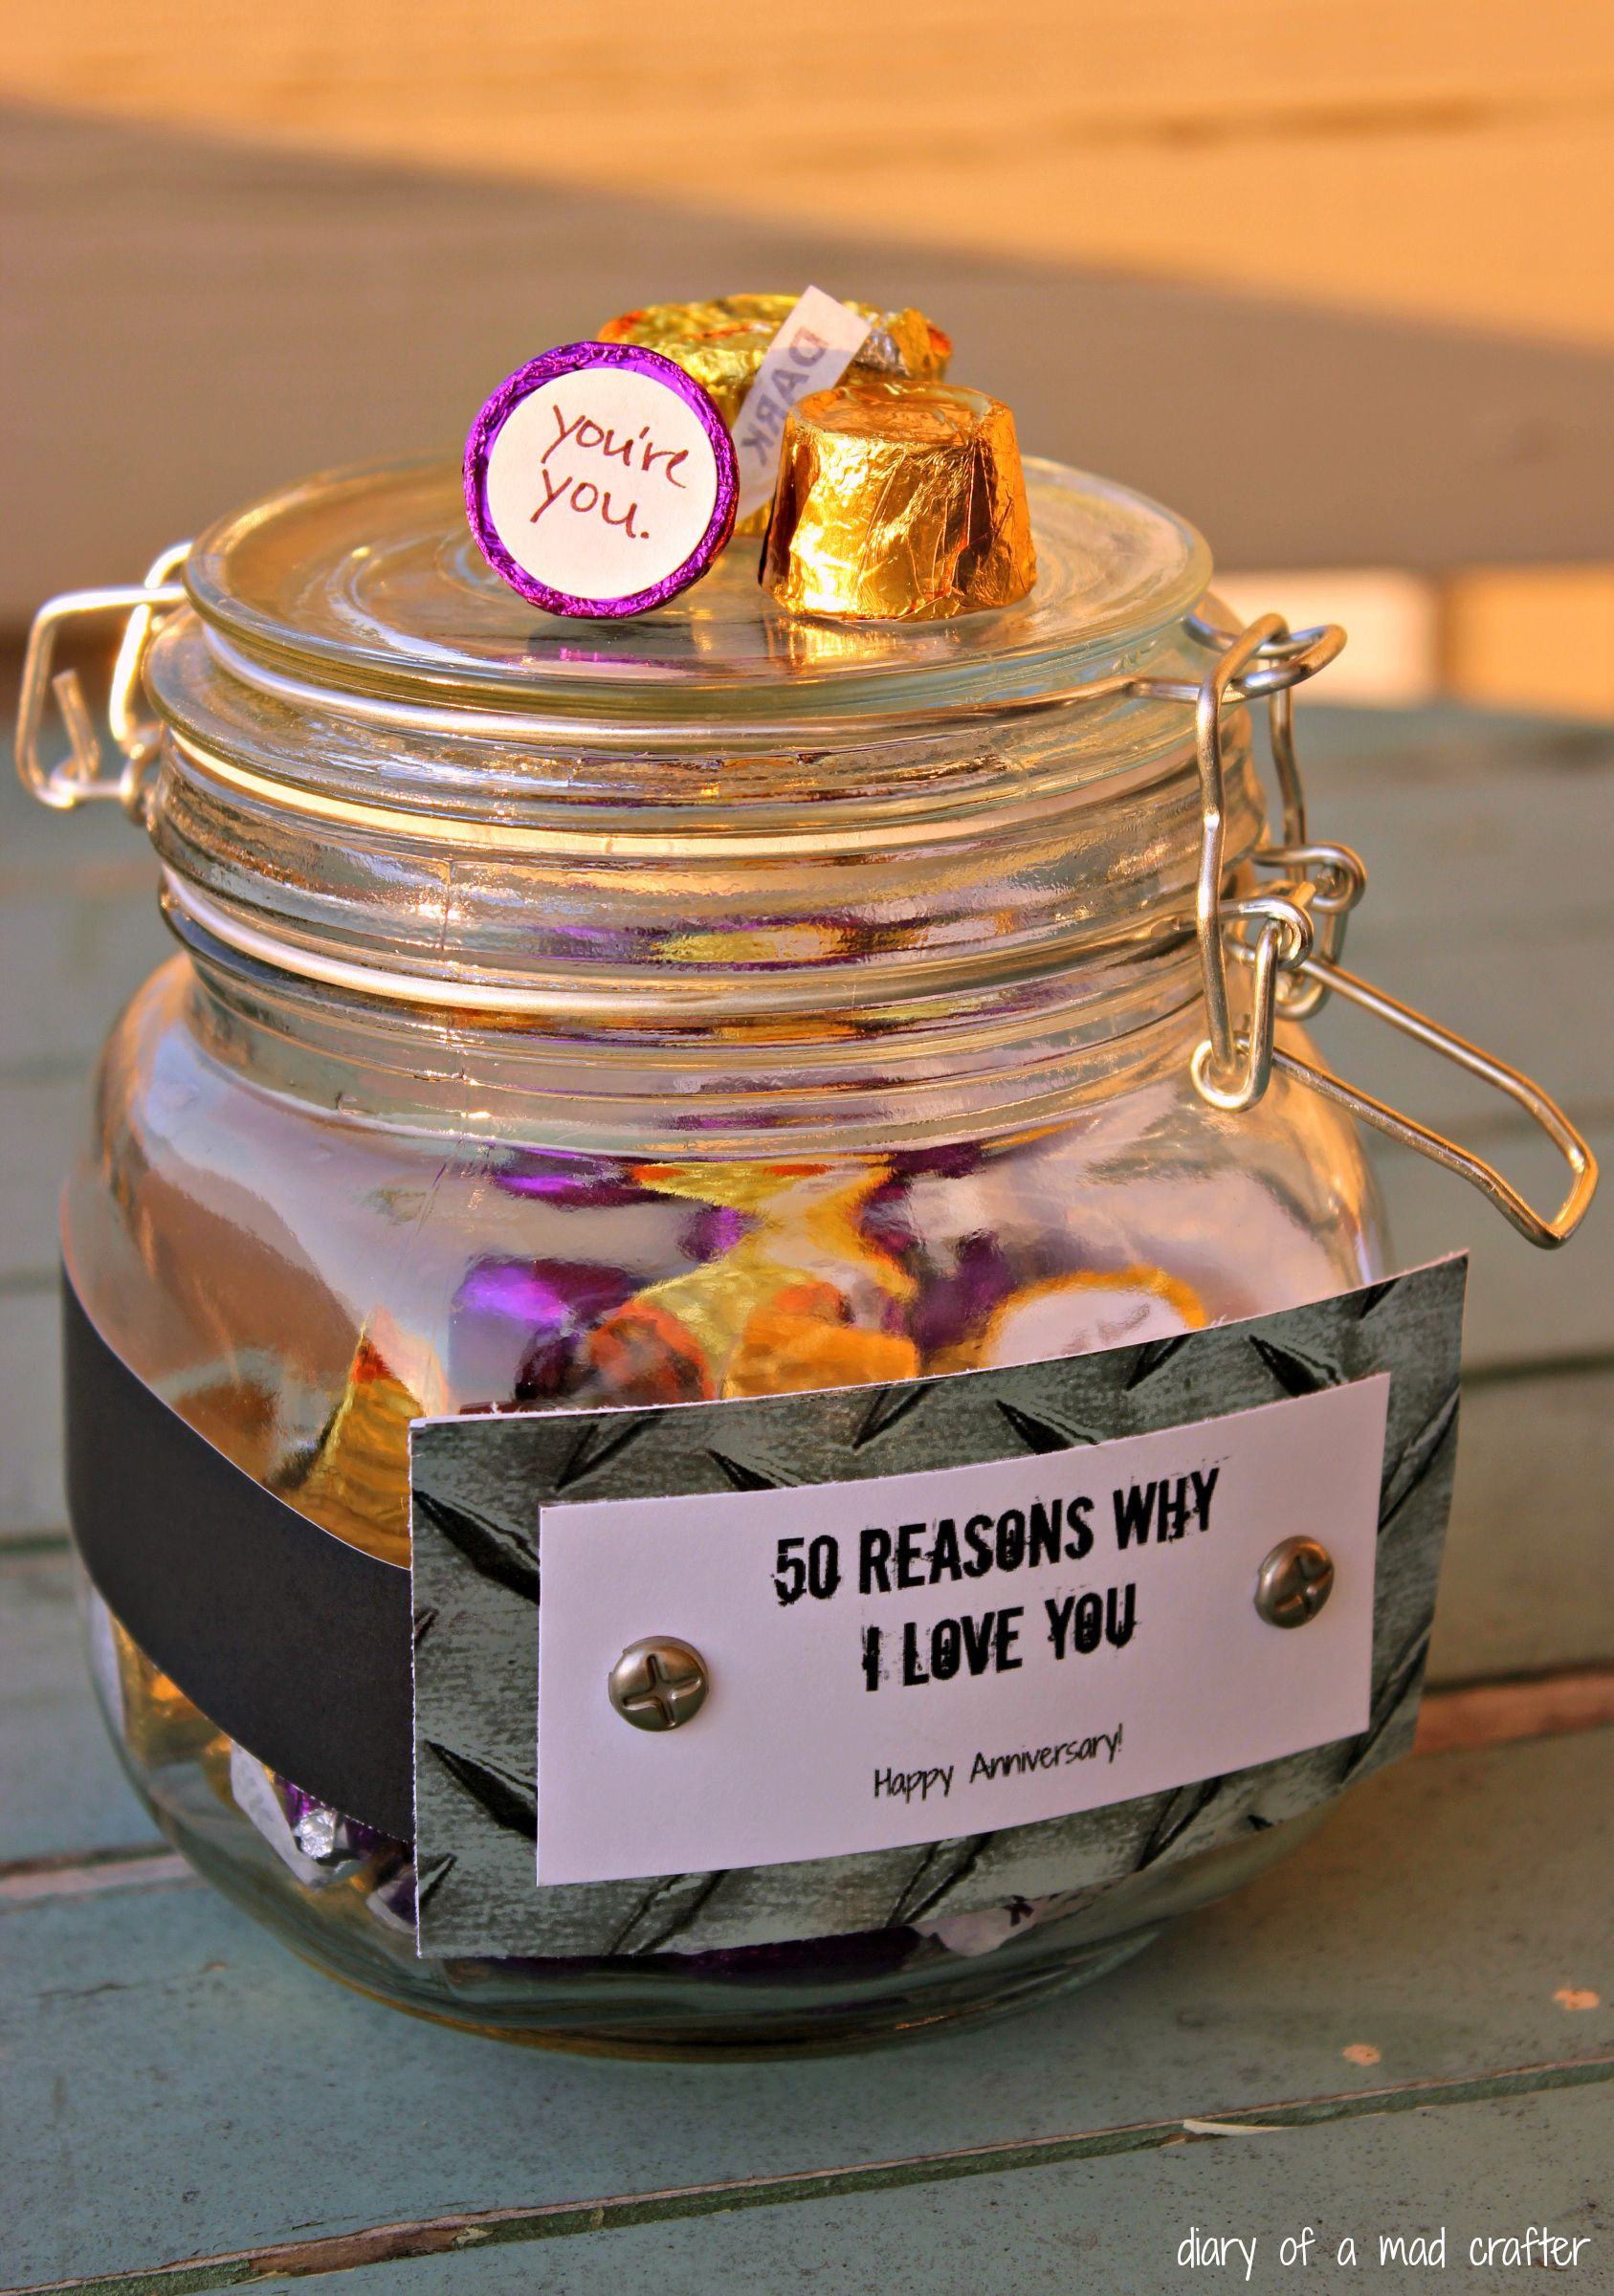 50 Reasons Why I Love You Jar Reasons Why I Love You Cute Anniversary Gifts Why I Love You